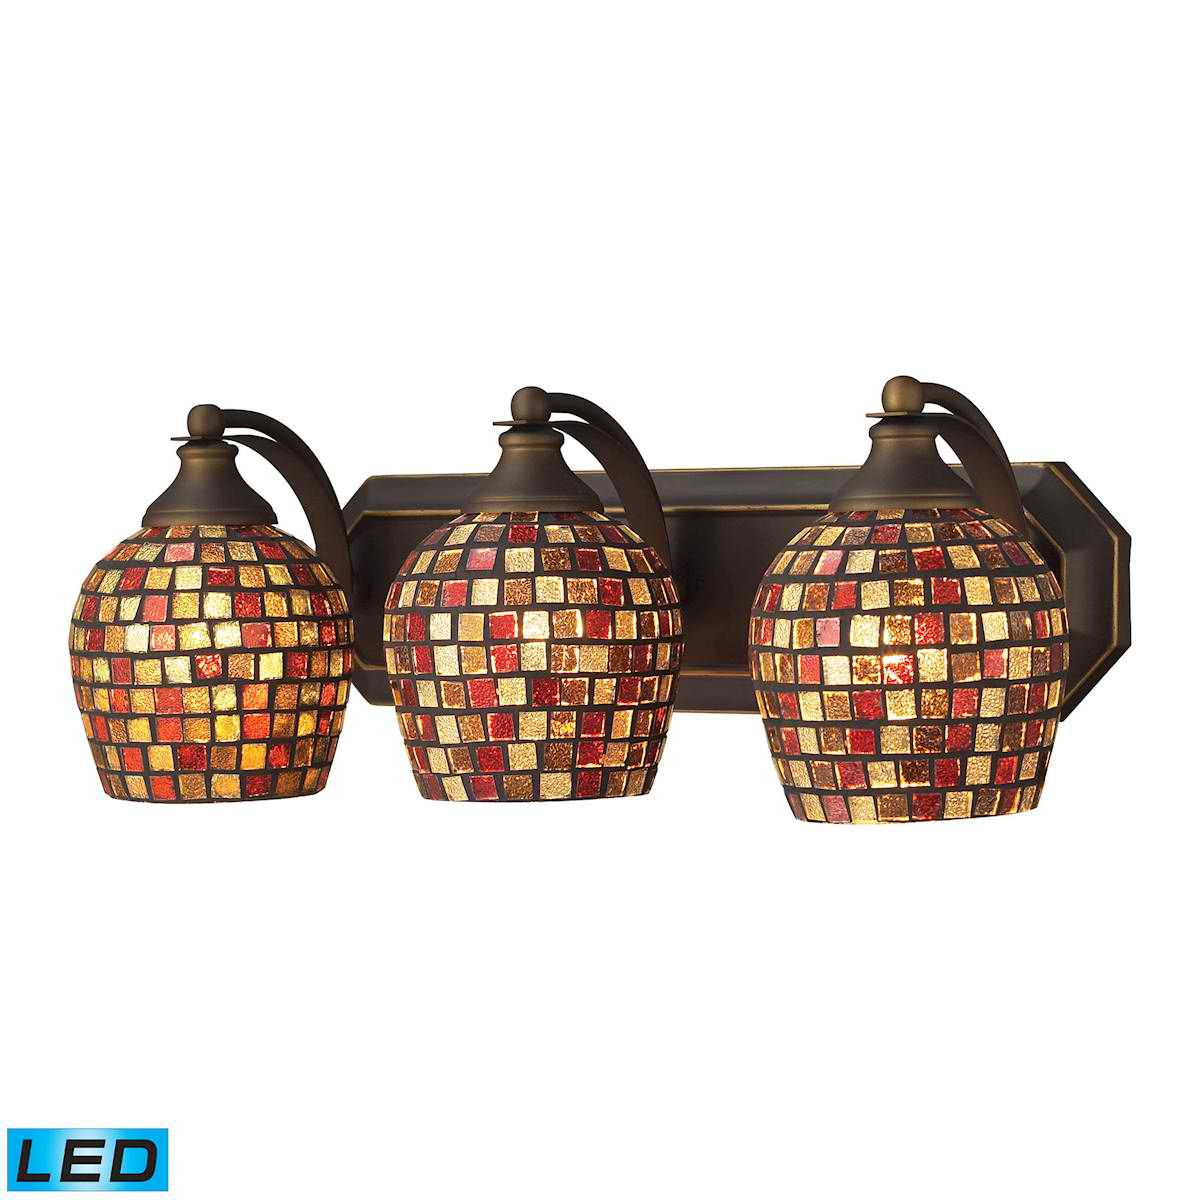 3 Light Vanity in Aged Bronze and Multi Mosaic Glass - LED, 800 Lumens (2400 Lumens Total) with Full Scale